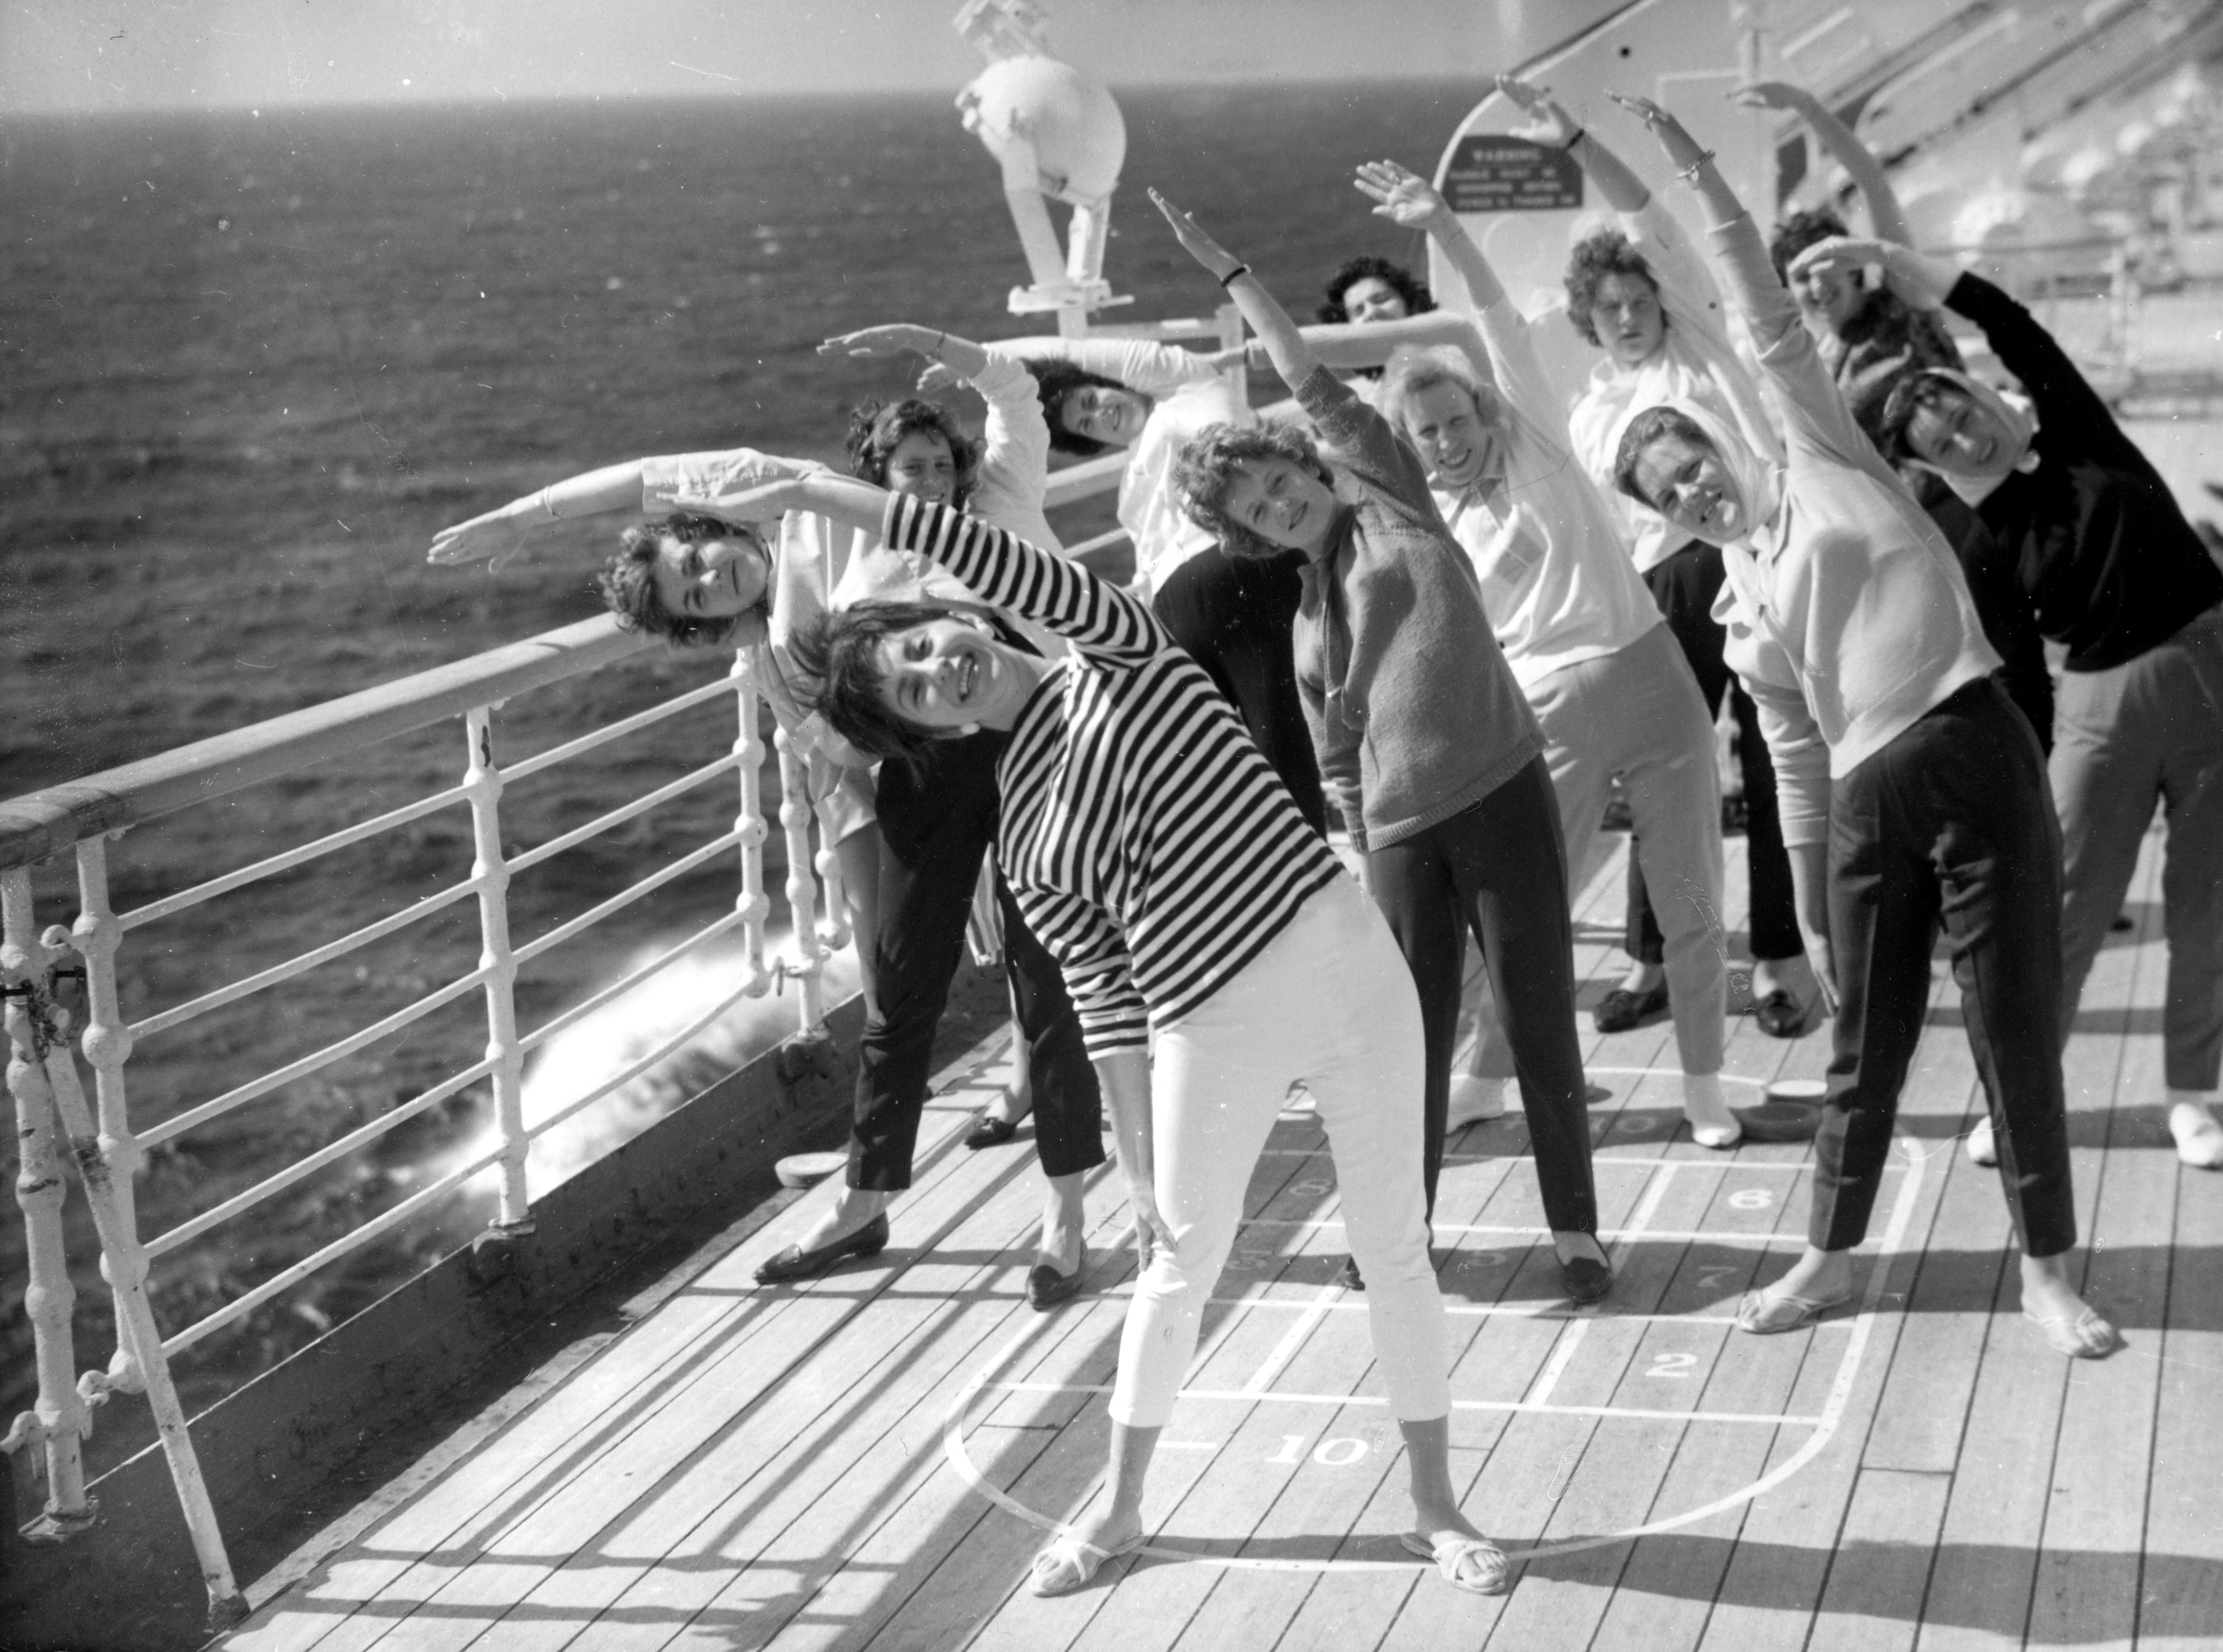 Dancer Lesley Ross from Sussex leads an exercise session on the deck of the Cunarder Sylvania in the mid-Atlantic. (PA)